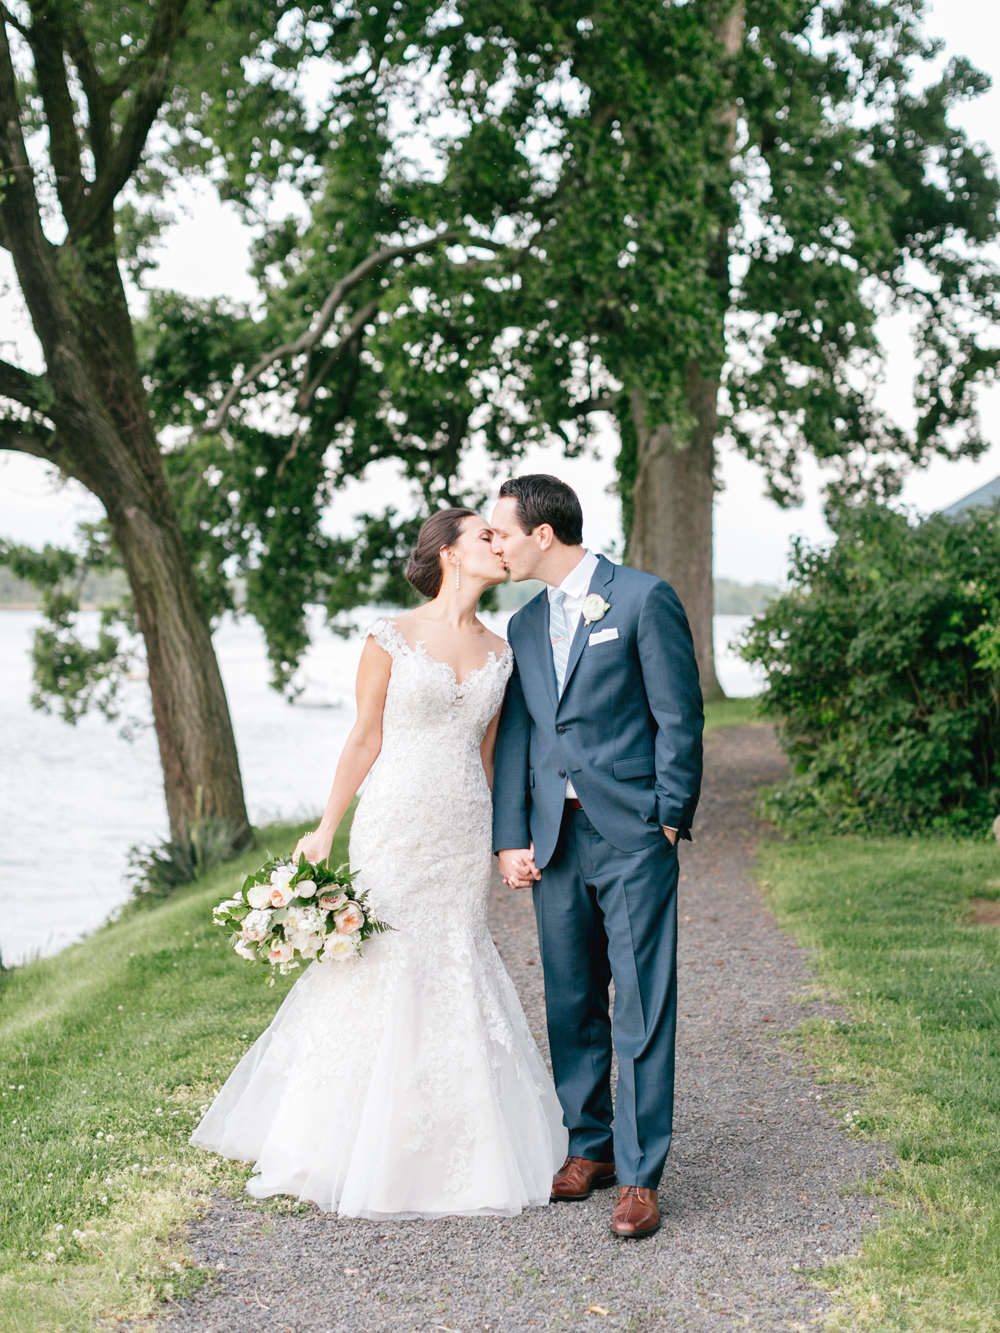 285 Emily Wren Photography Romantic Ethereal Glen Foerd Wedding